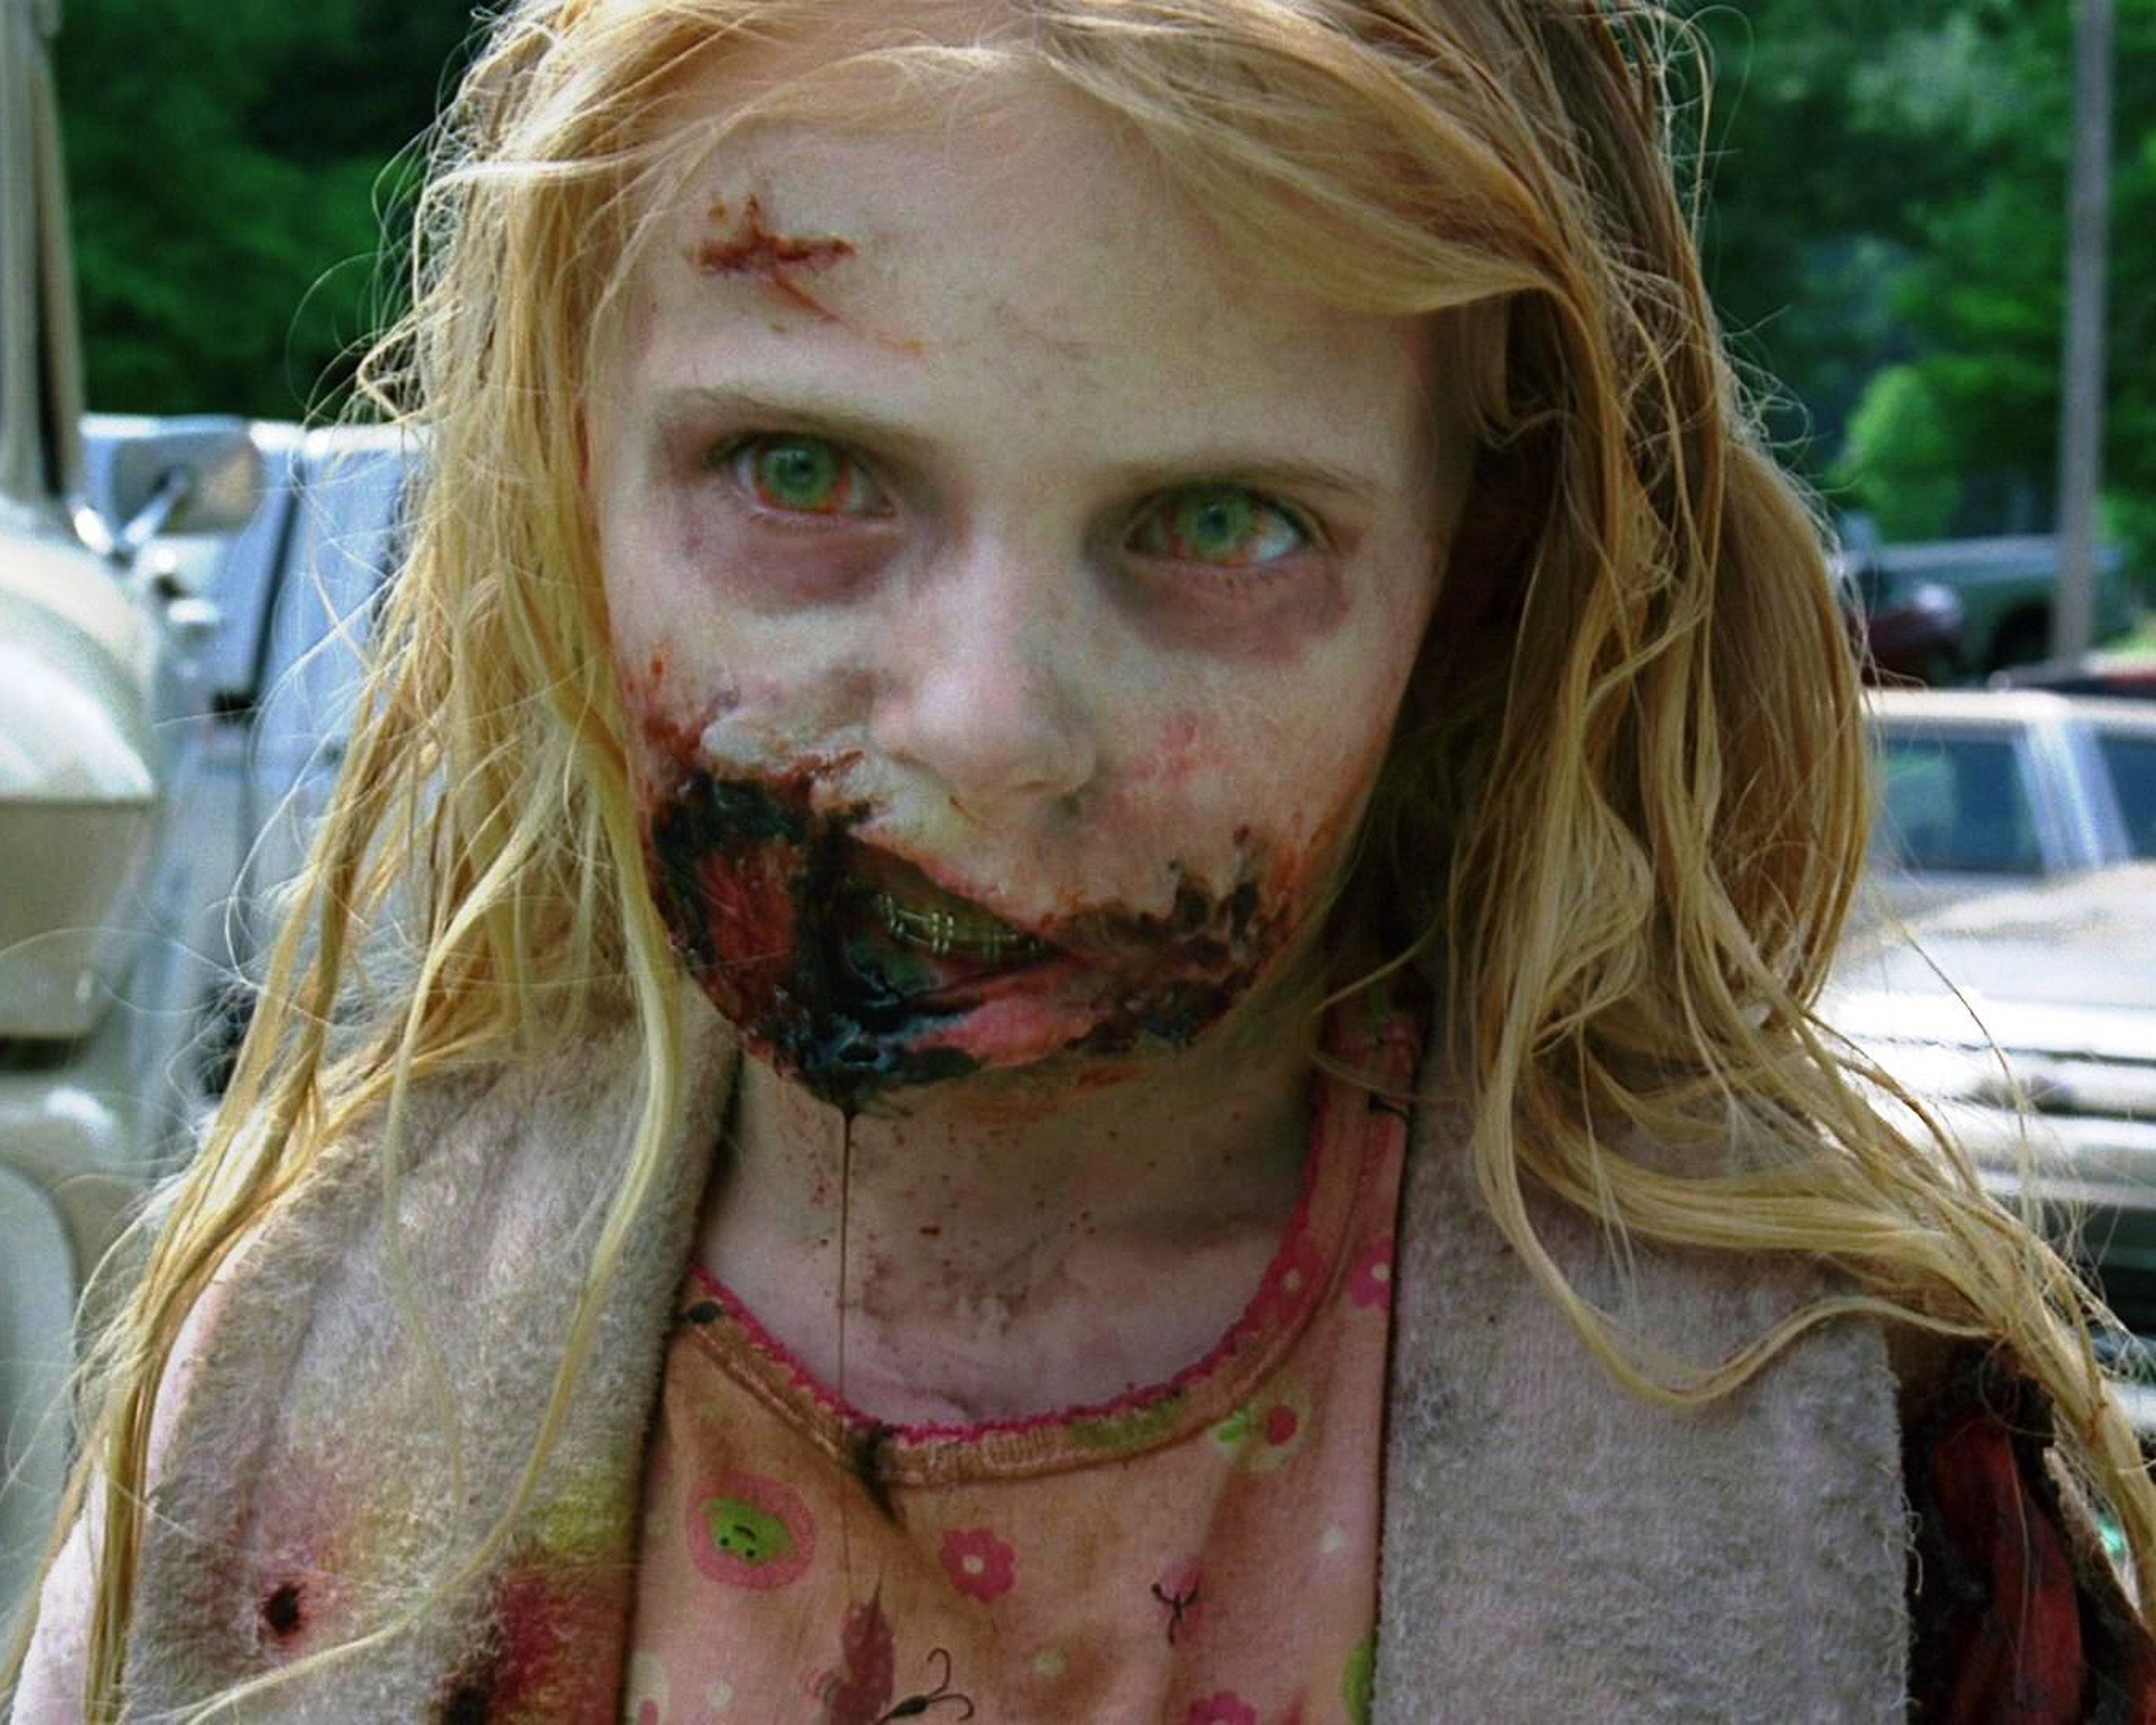 The First Zombie On Walking Dead Doesn T Look Like This Anymore